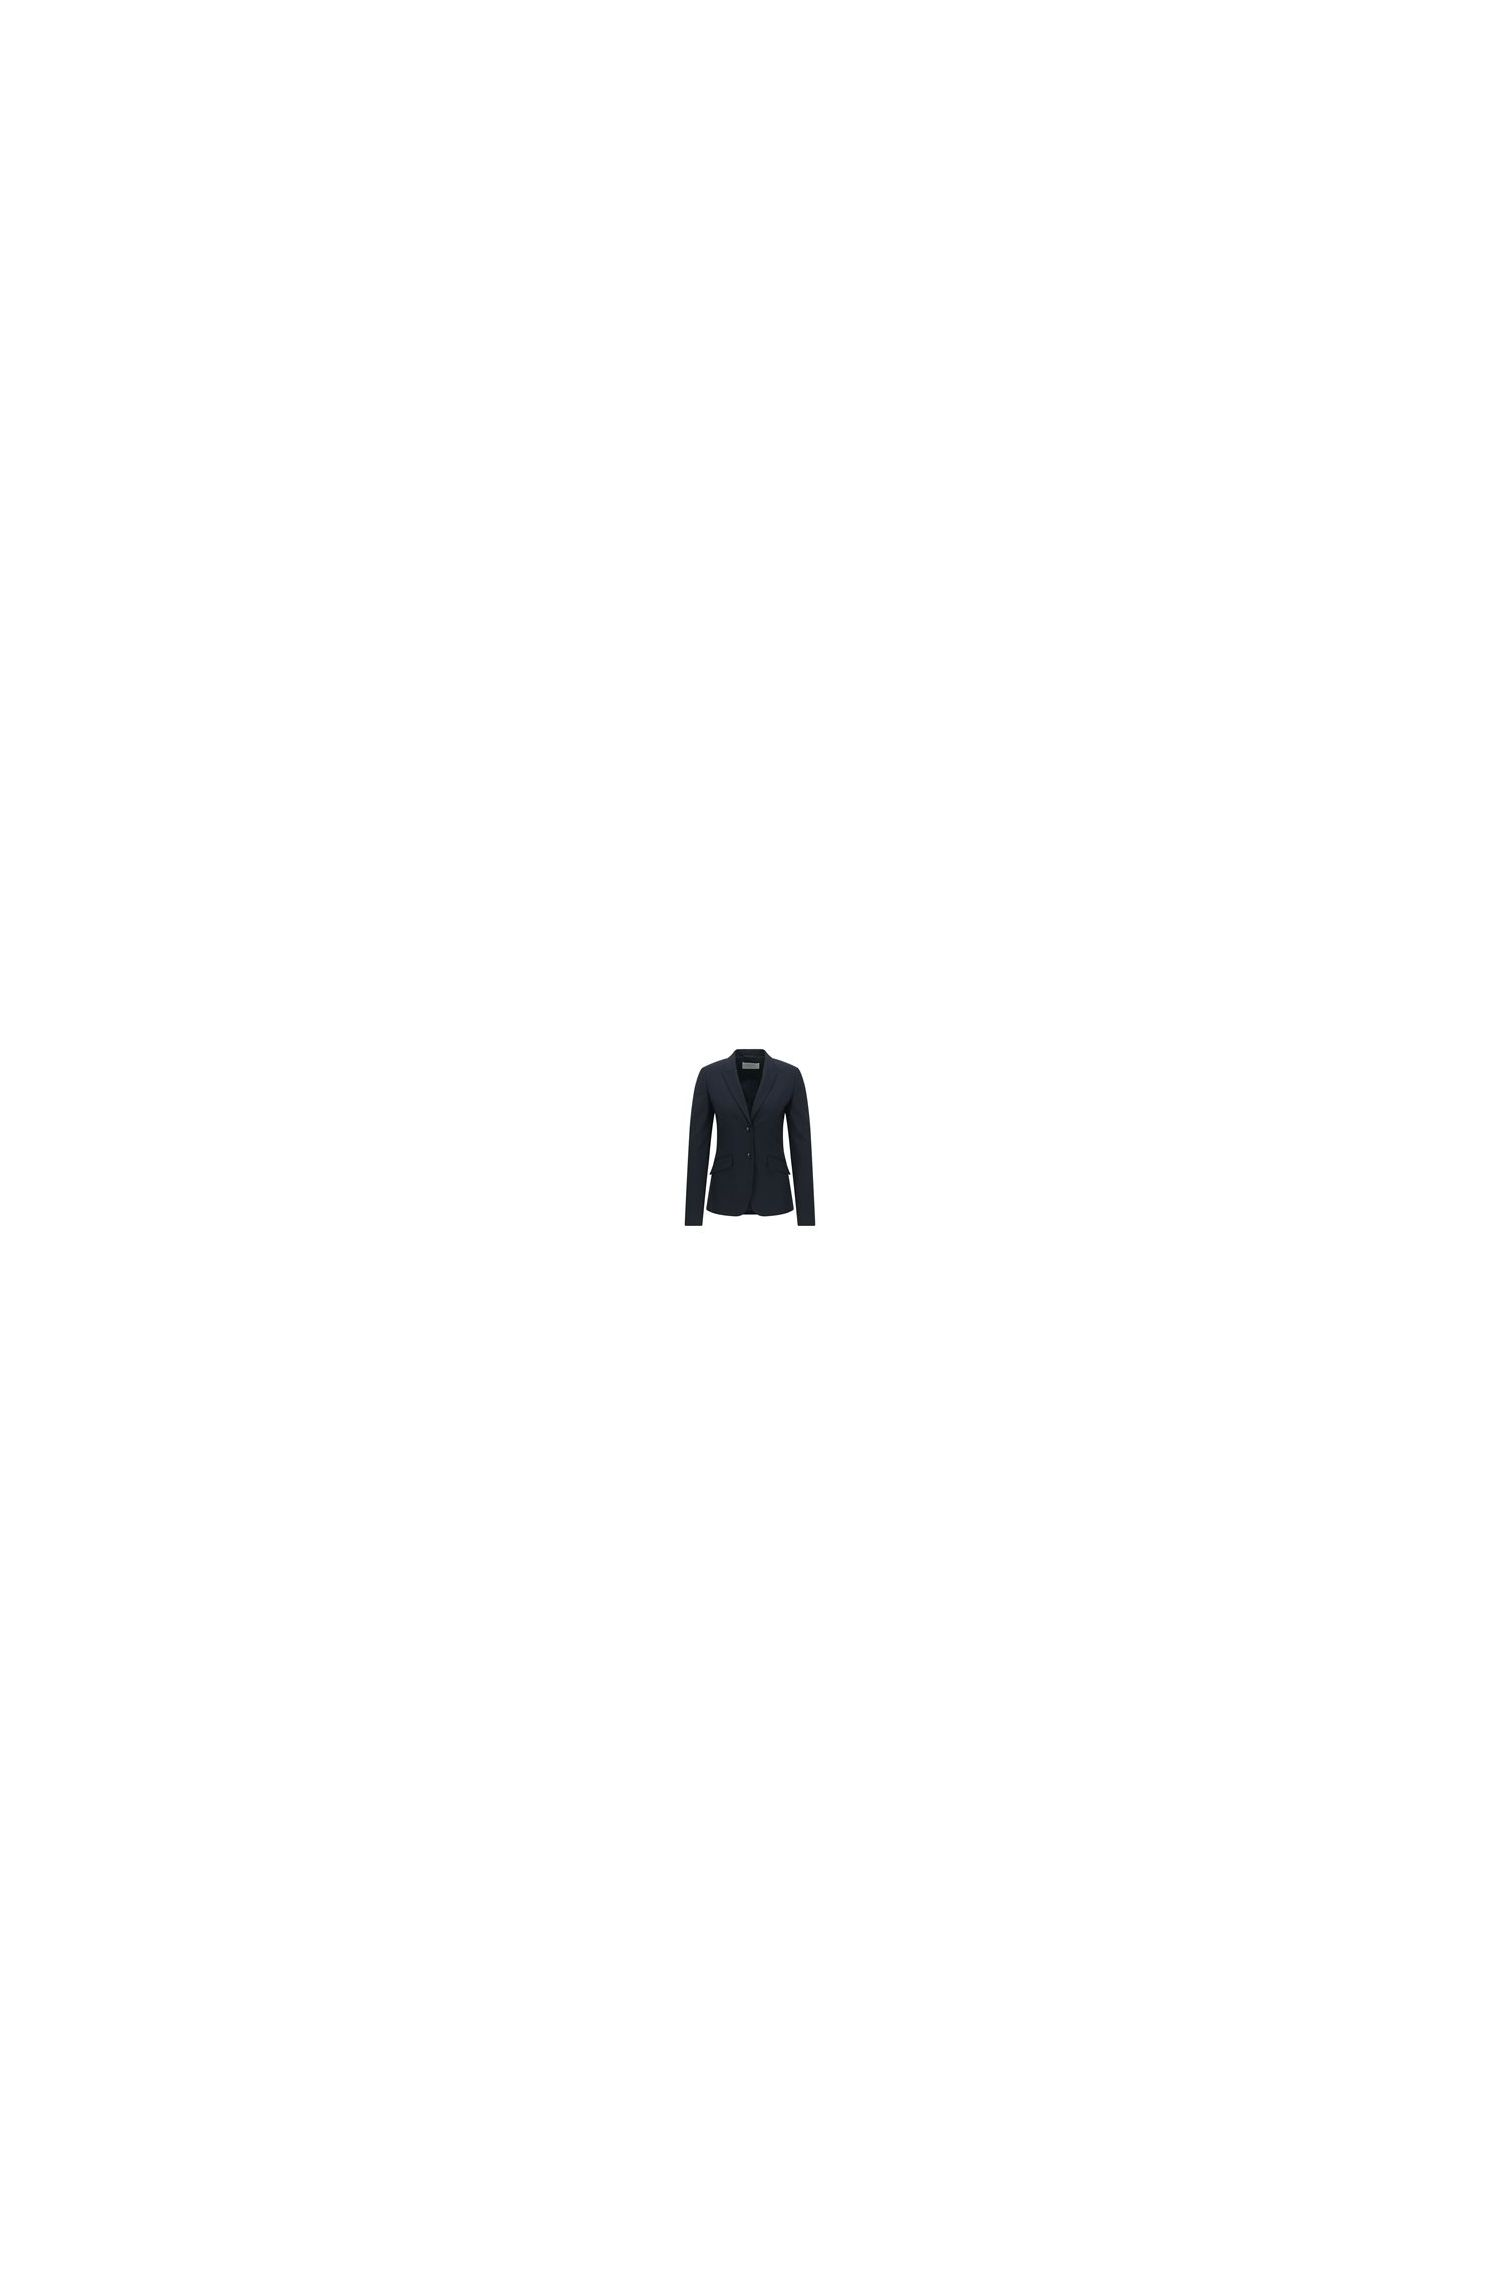 'Julea' | Stretch Virgin Wool Jacket